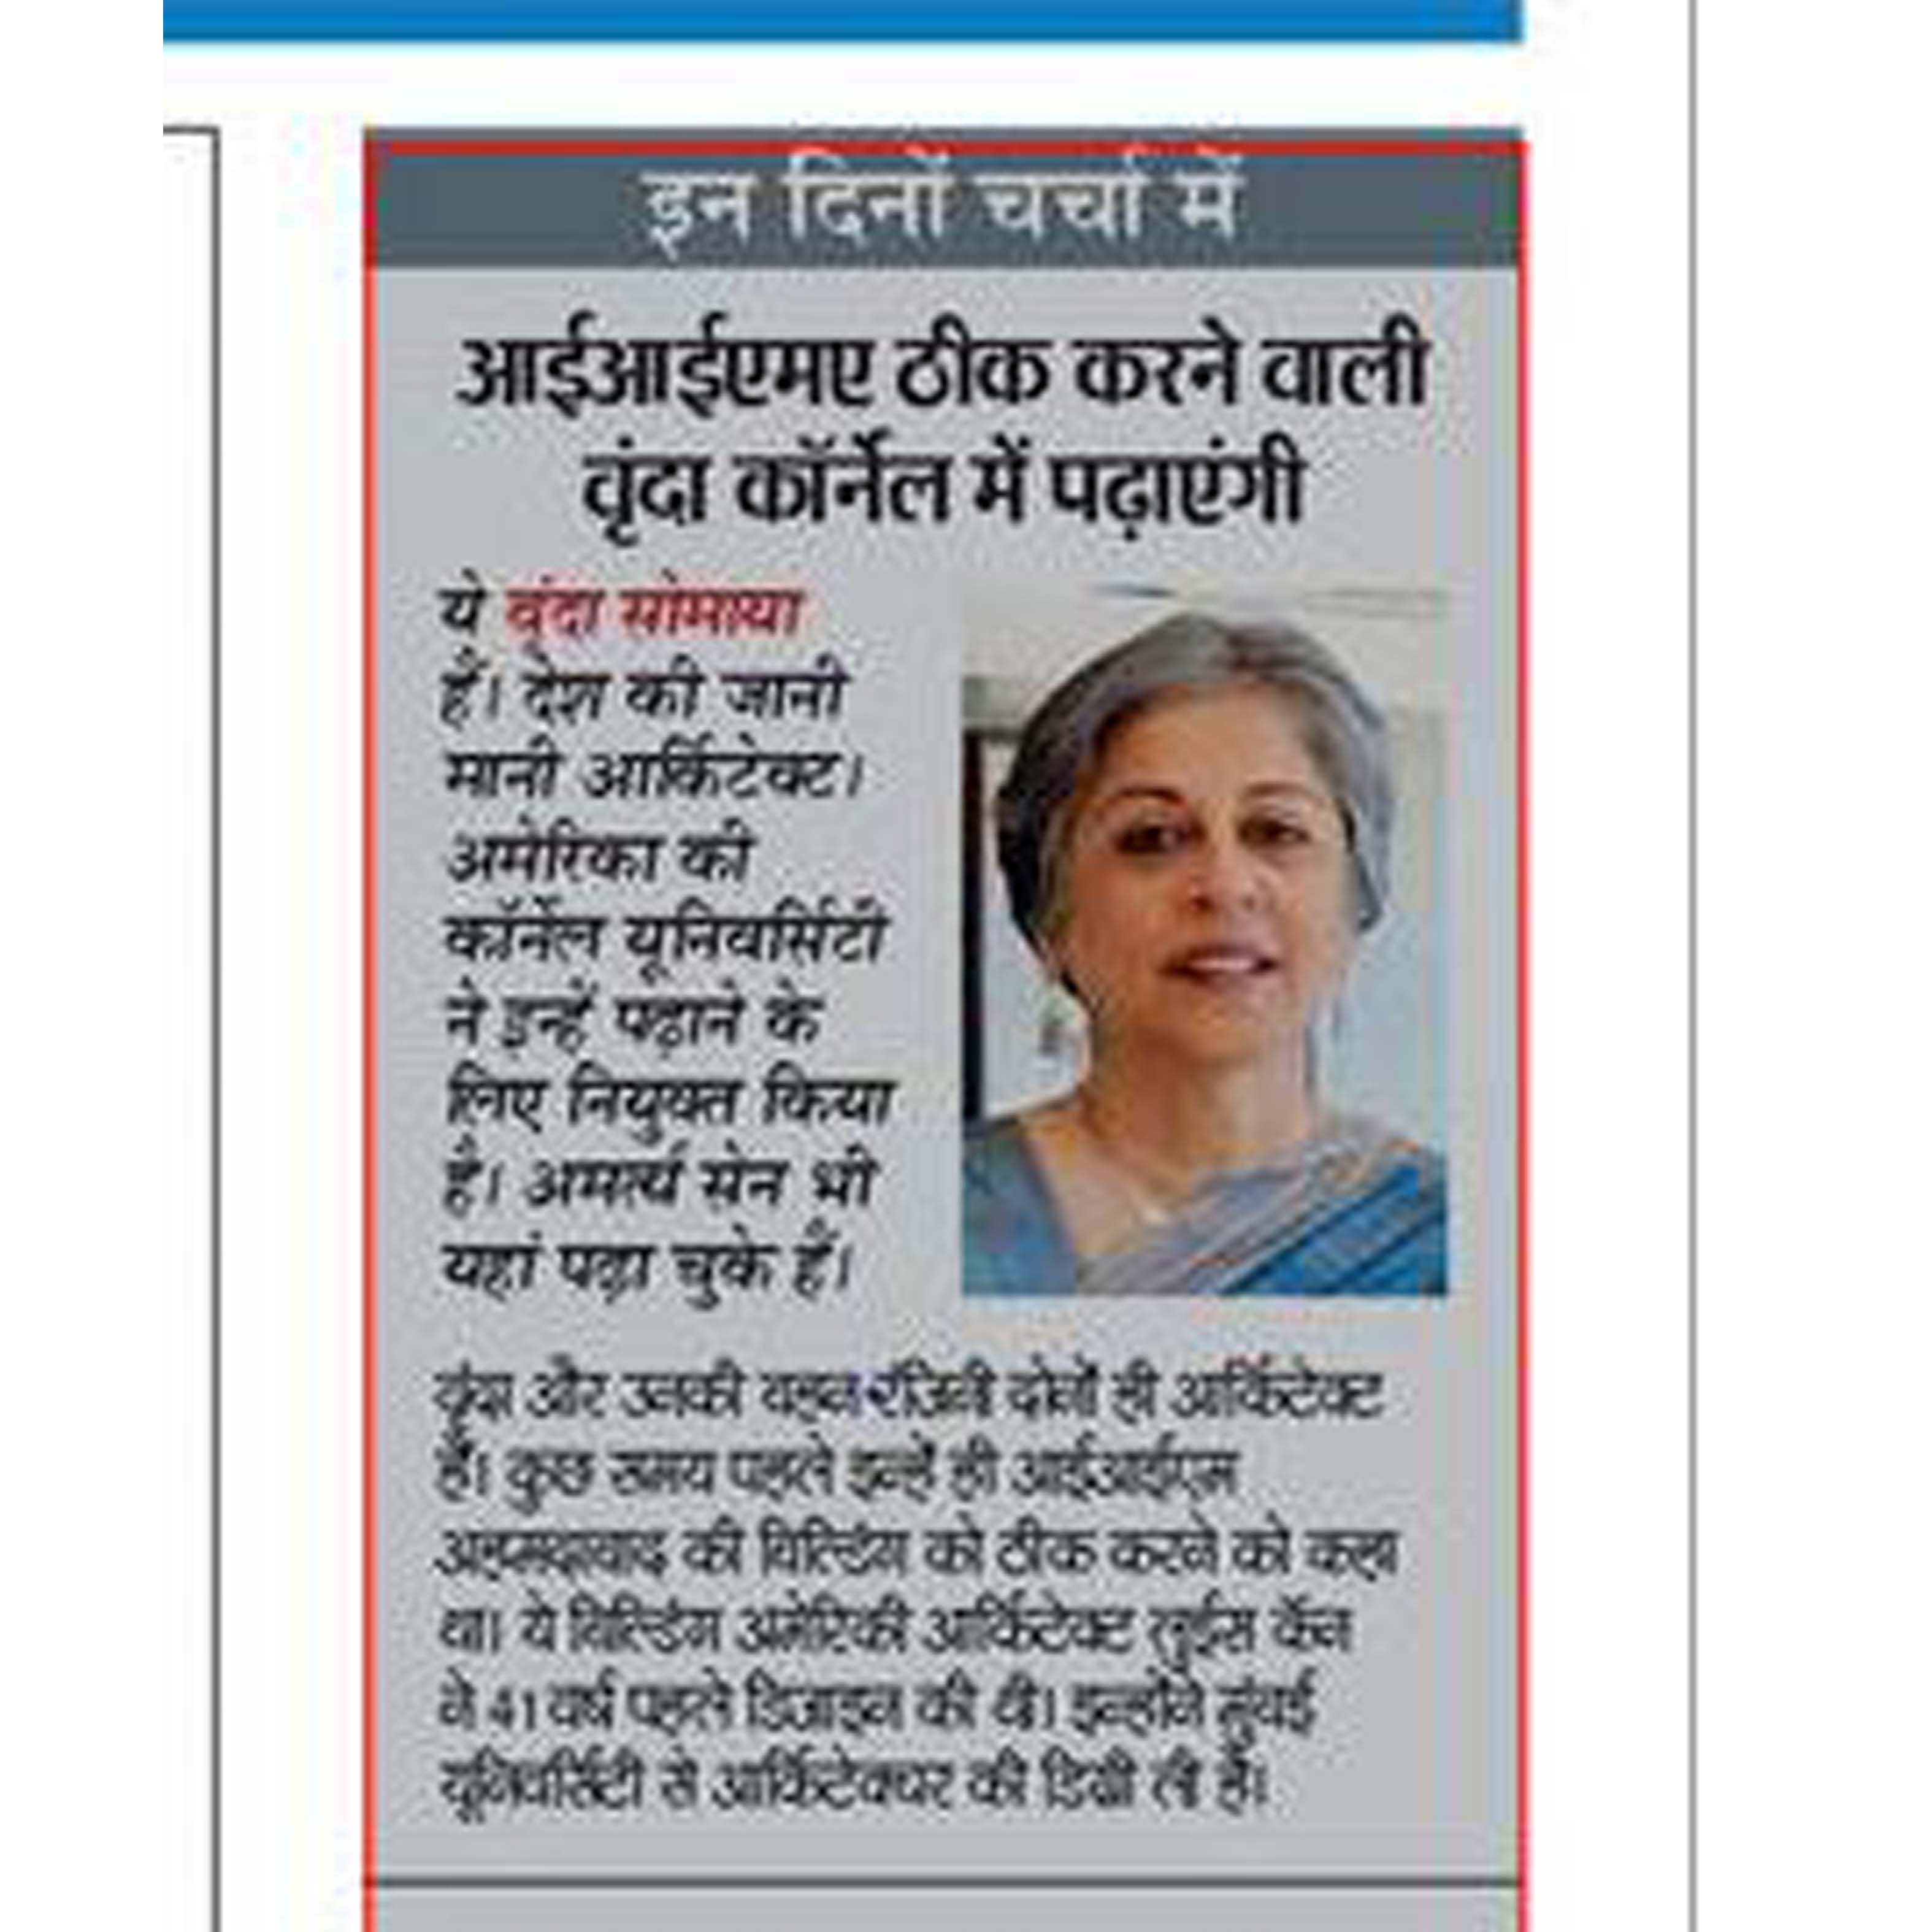 Brinda Somaya elected as the A.D. White Professor-at-large, Dainik Bhaskar, 27th June 2017.